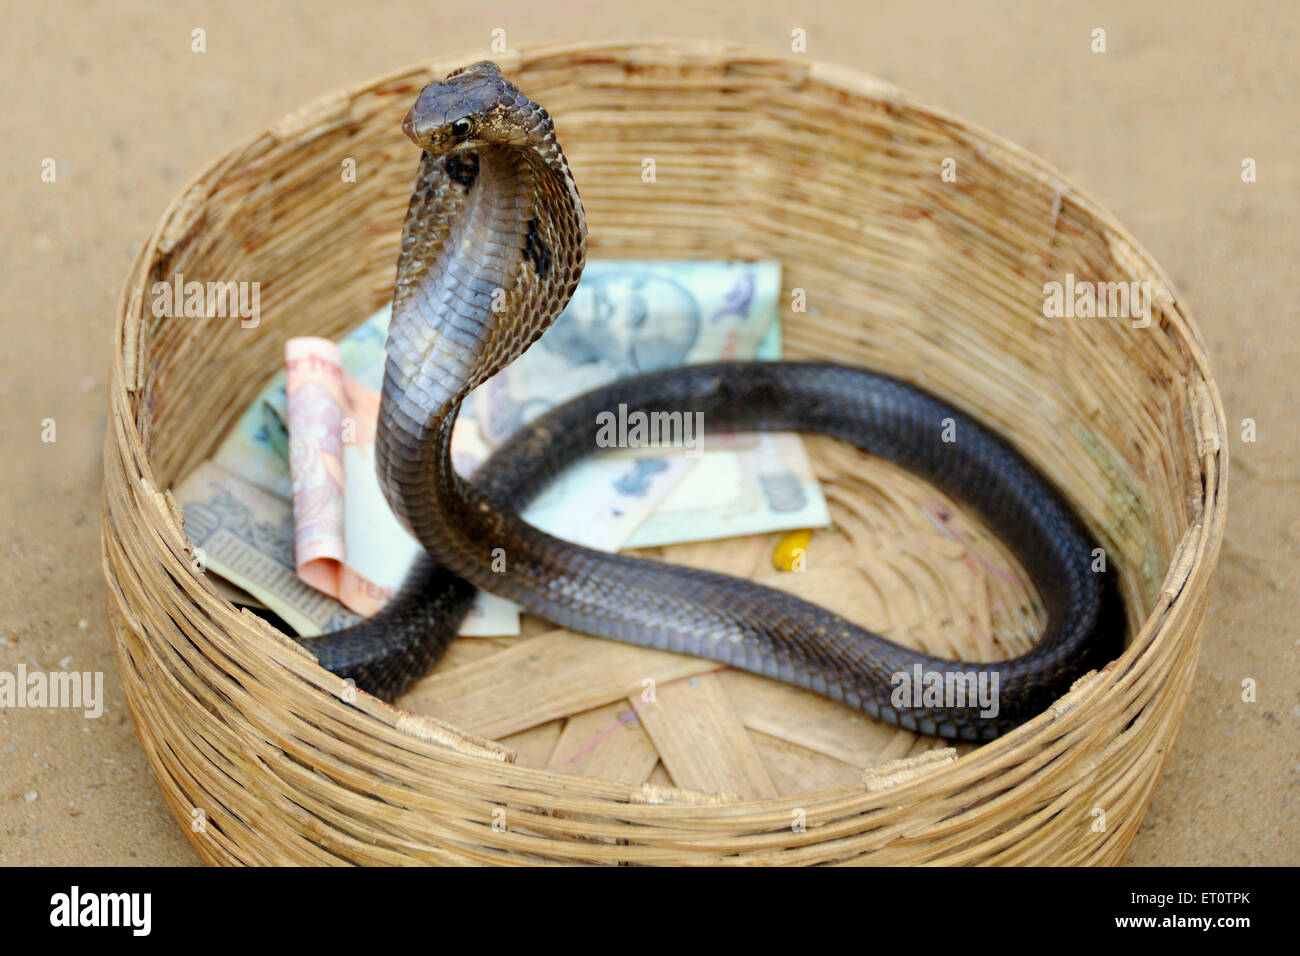 Cobra snake in a basket with money ; Rajasthan ; India - Stock Image